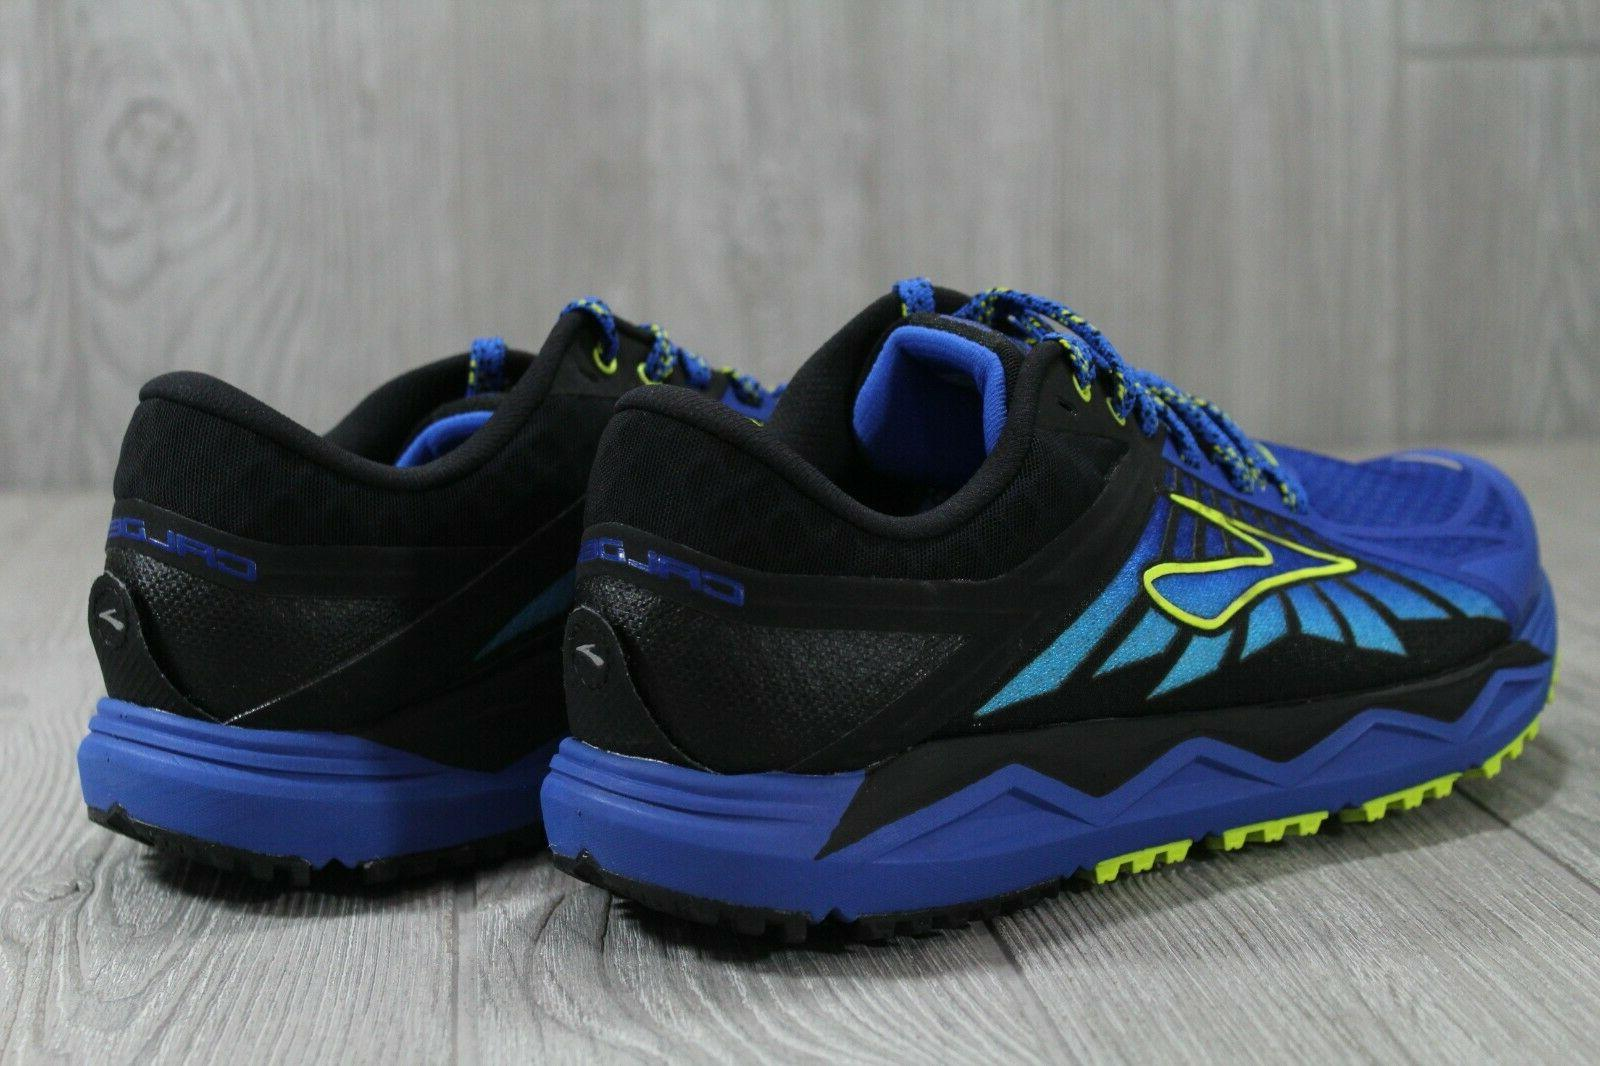 38 2 Trail Blue Running Shoes Men's Size 8.5 9 110272-429